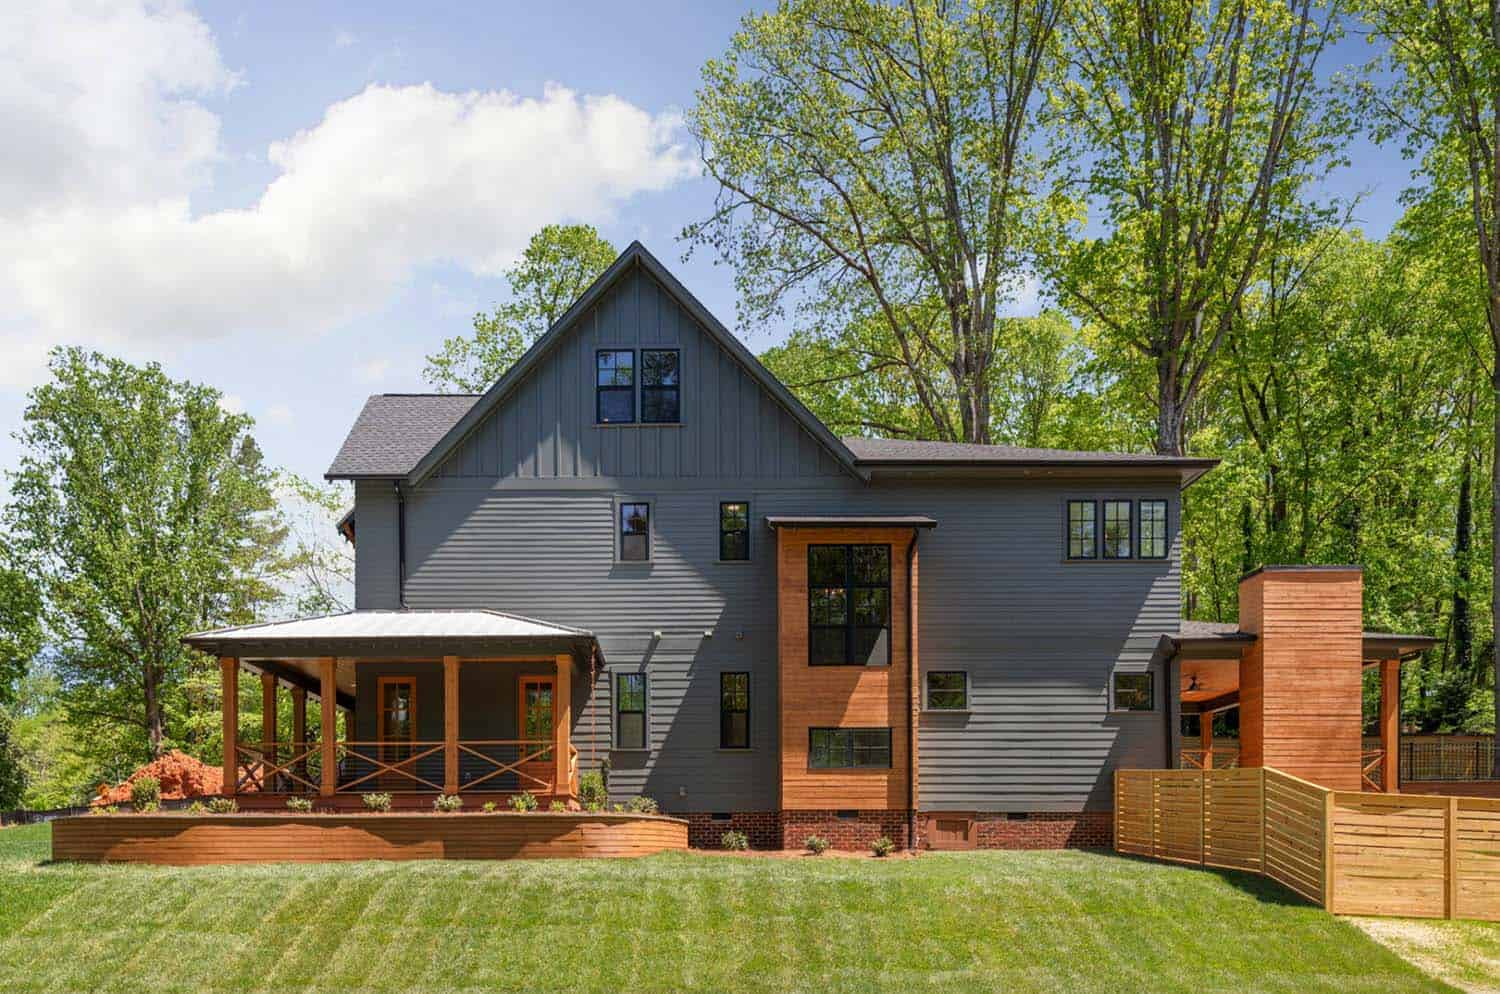 pike properties build stunning modern farmhouse in the sprawling countrysides of north carolina